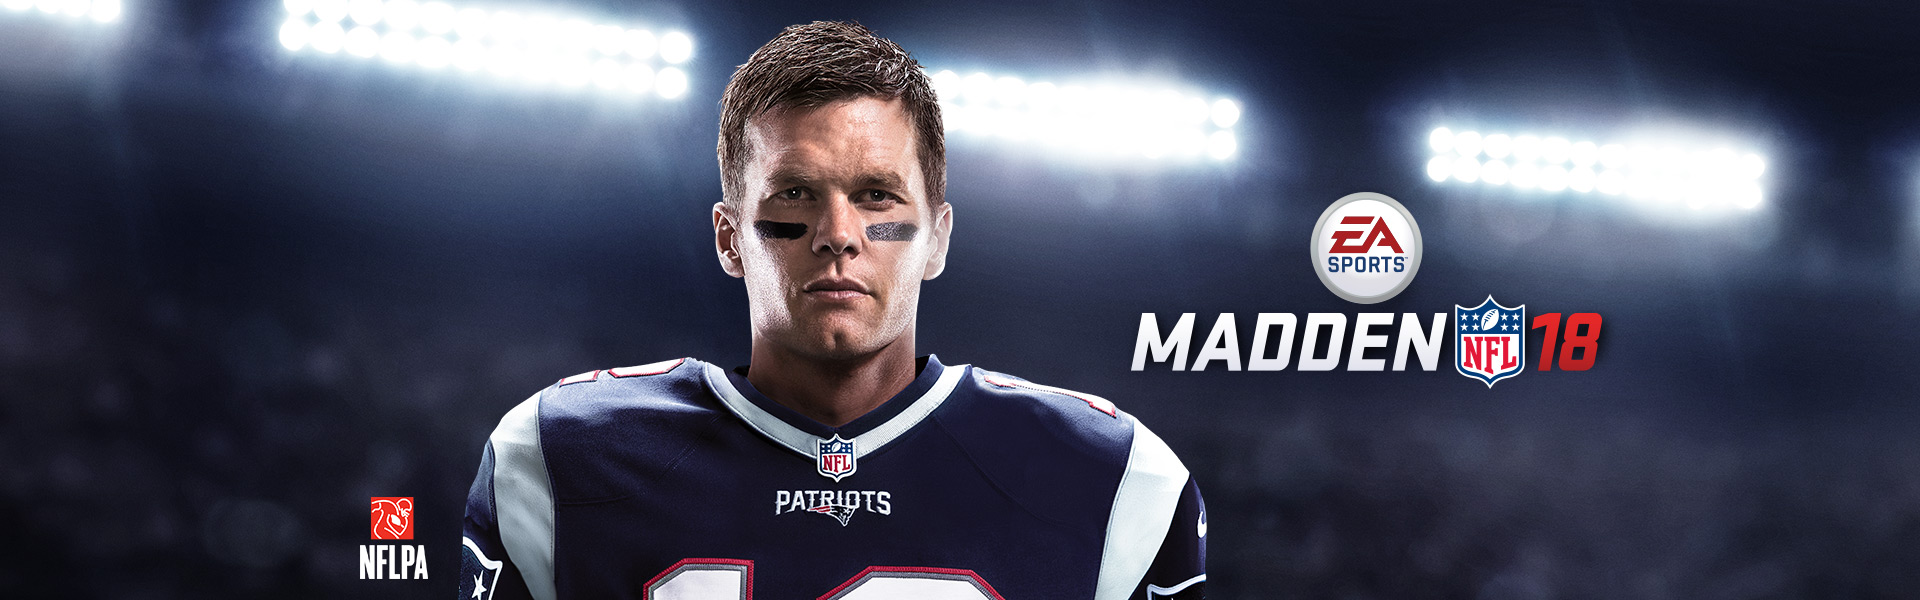 Madden NFL 18 logo with front view of Tom Brady in Patriots uniform